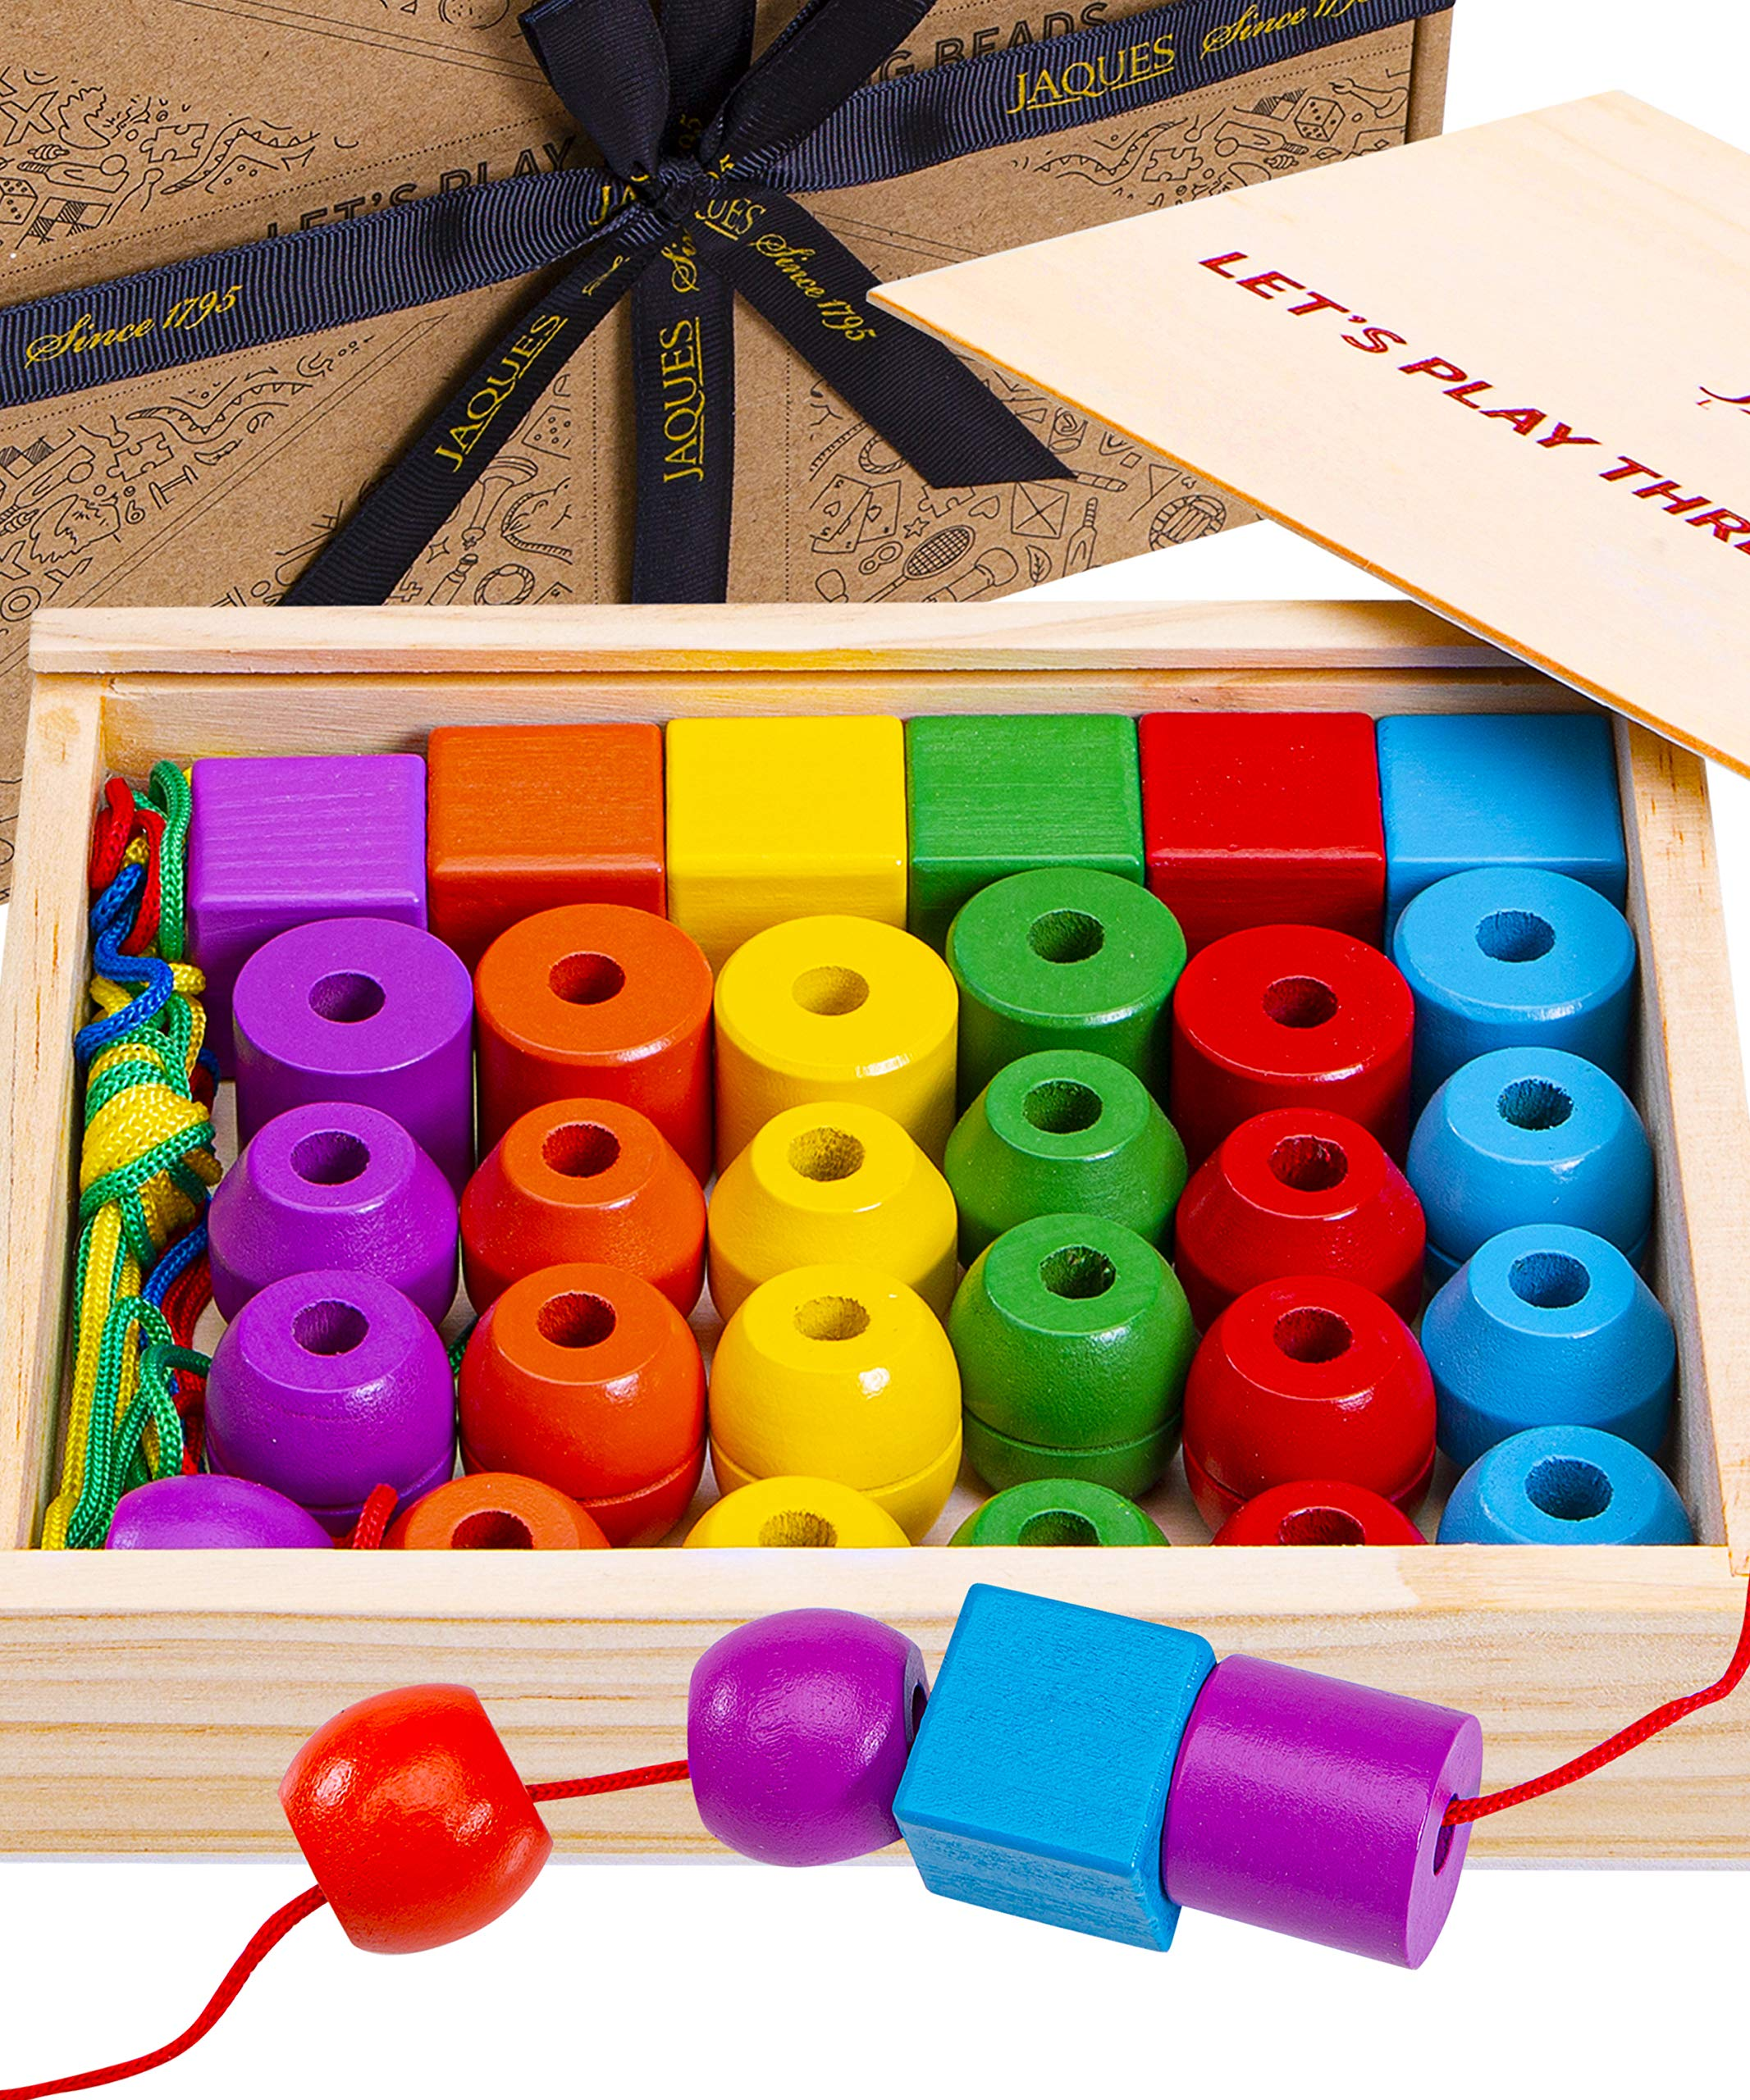 Jaques of London Wooden Toys | Perfect Learning Toys for 3 4 5 Year Olds | Toddler Activities Threading Toys | Quality Threading Beads | Wooden Toys for 3 4 5 Year Olds | Since 1795